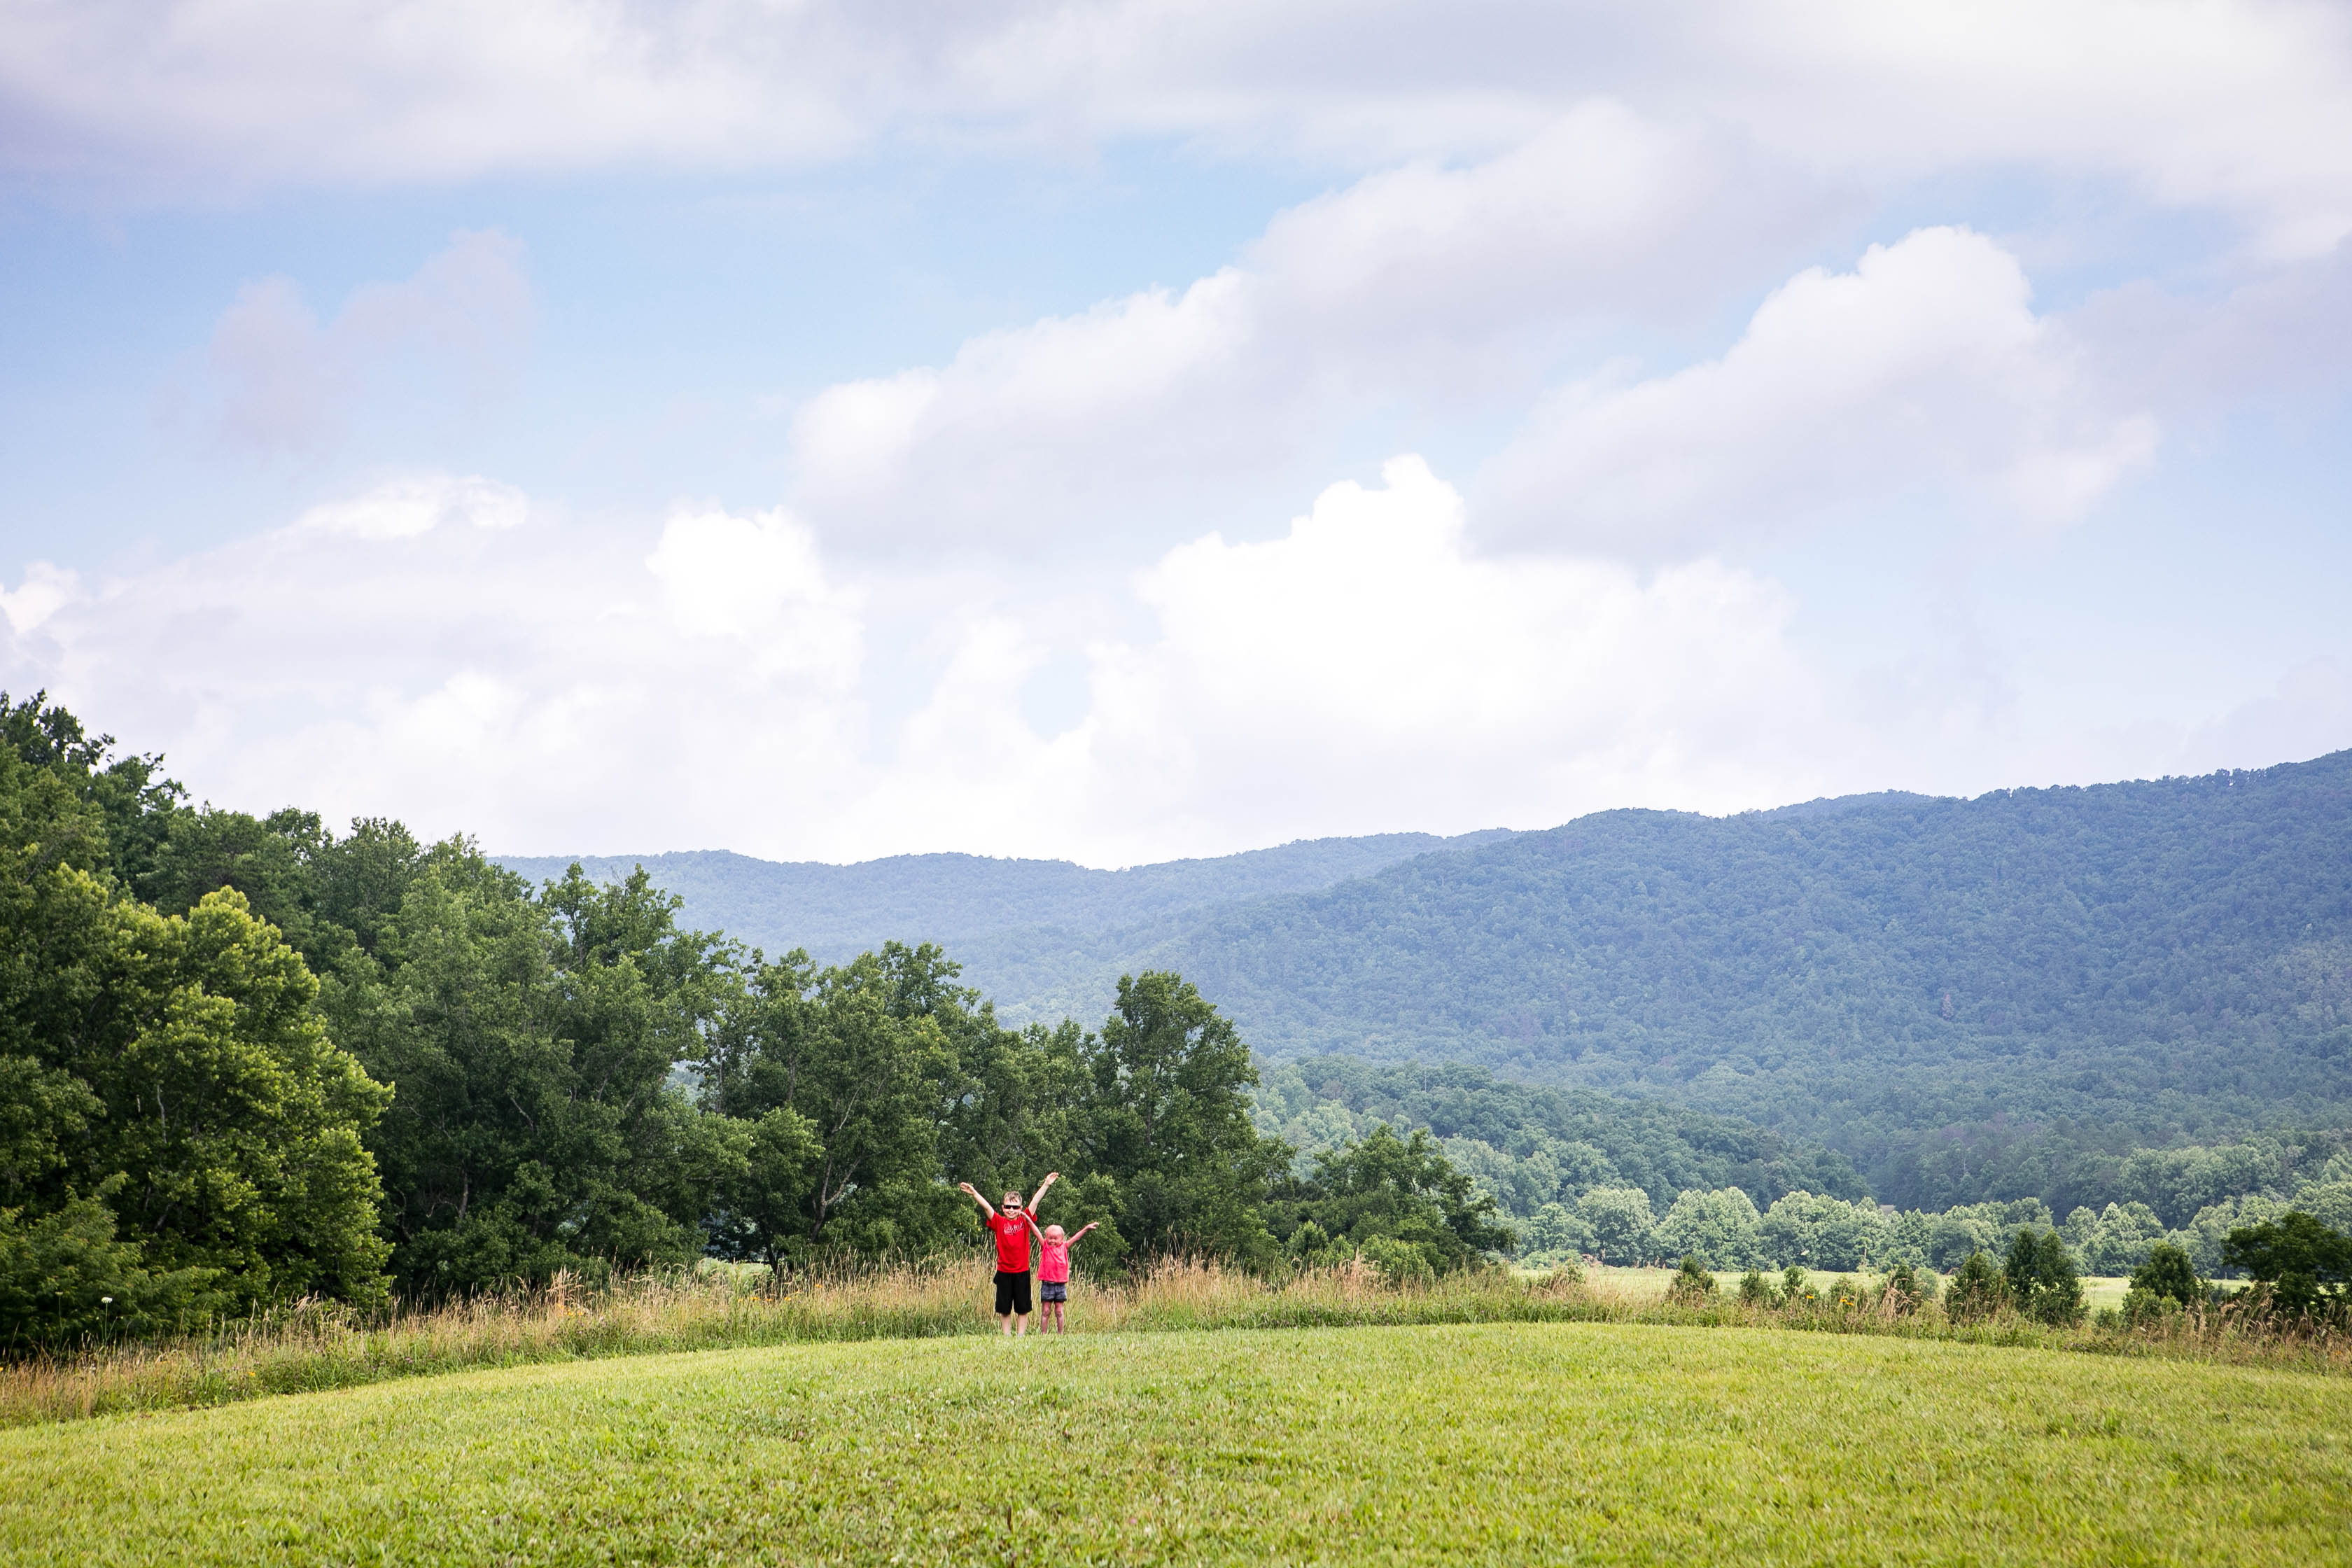 Visit Cade's Cove in the smoky mountains